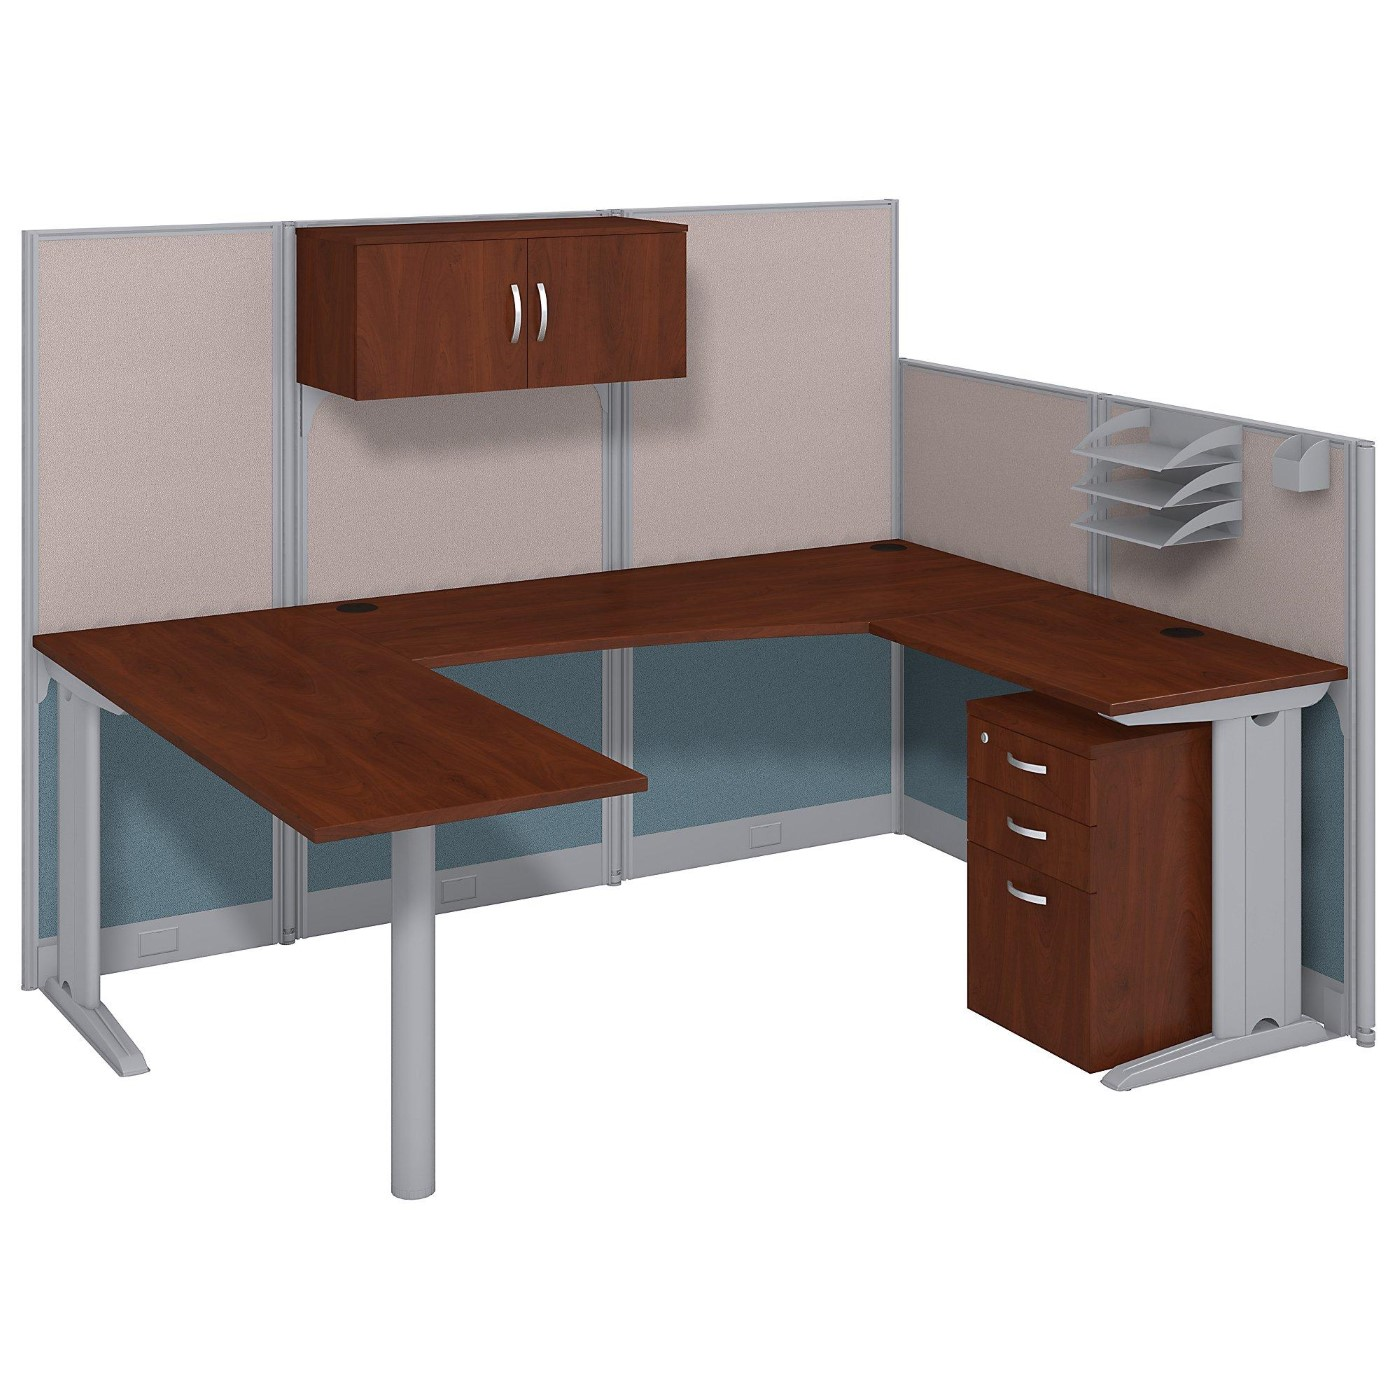 BUSH BUSINESS FURNITURE OFFICE IN AN HOUR 89W X 65D U SHAPED CUBICLE WORKSTATION WITH STORAGE. FREE SHIPPING.  SALE DEDUCT 10% MORE ENTER '10percent' IN COUPON CODE BOX WHILE CHECKING OUT. ENDS 5-31-20.